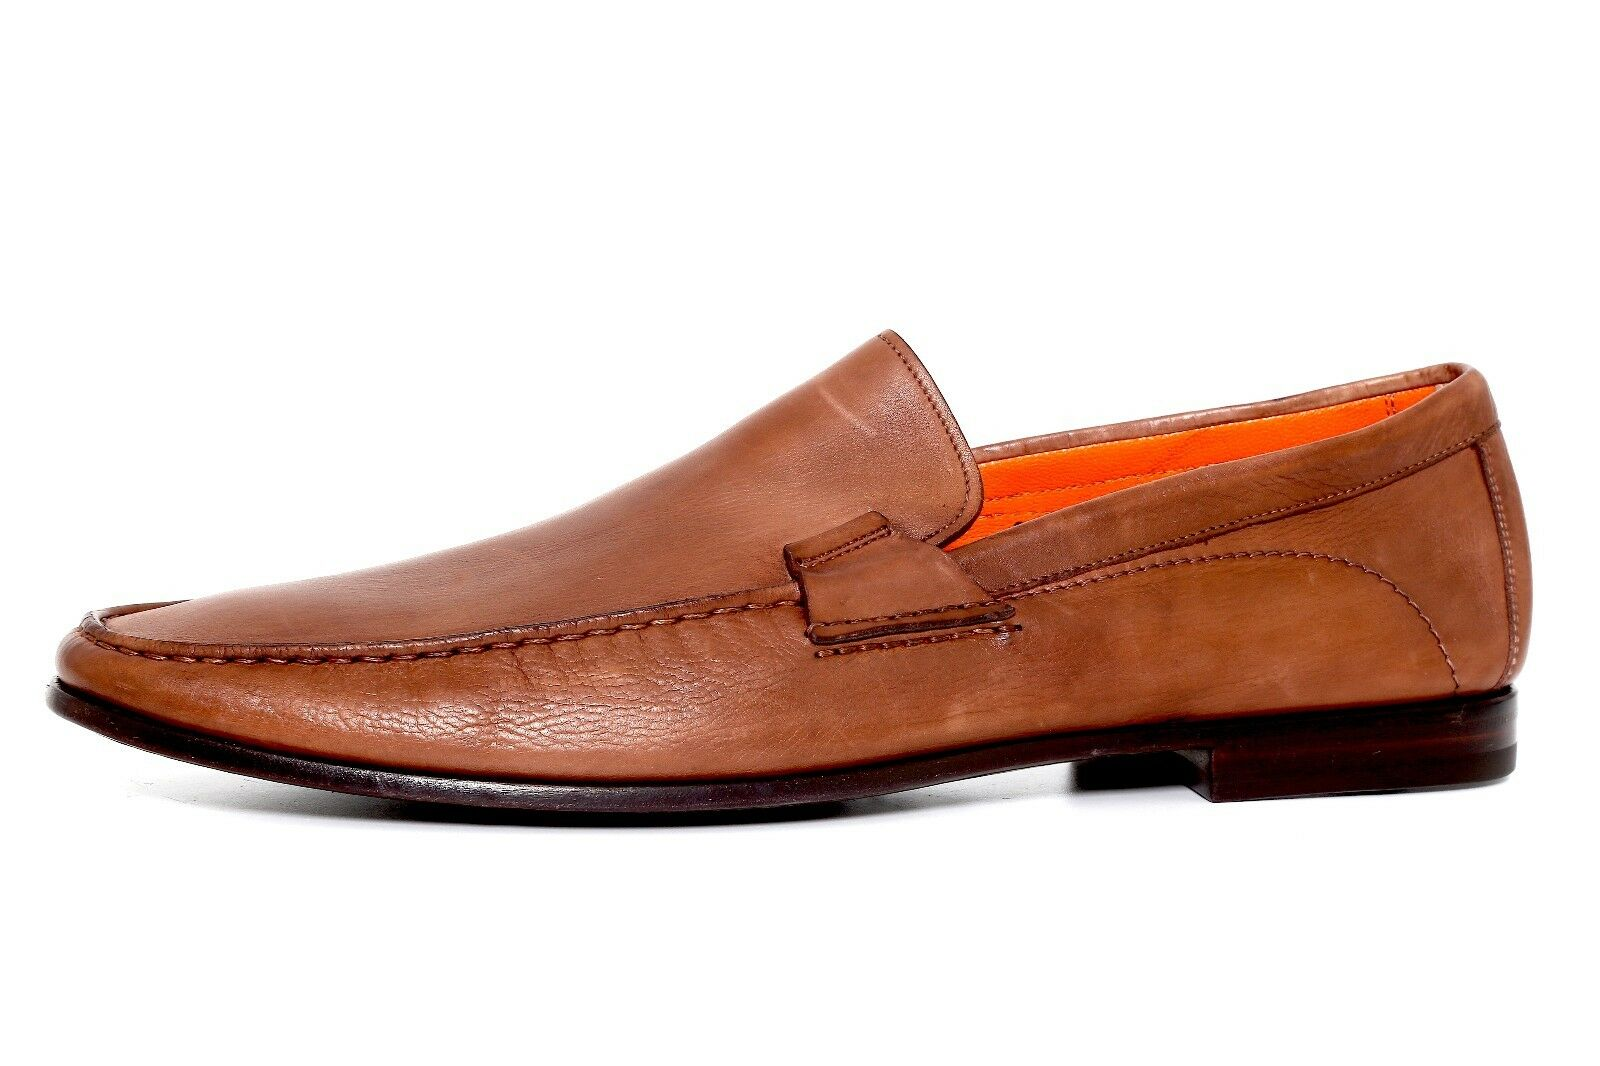 Santoni Men's Brown Leather Loafers 2463 Size 13 B